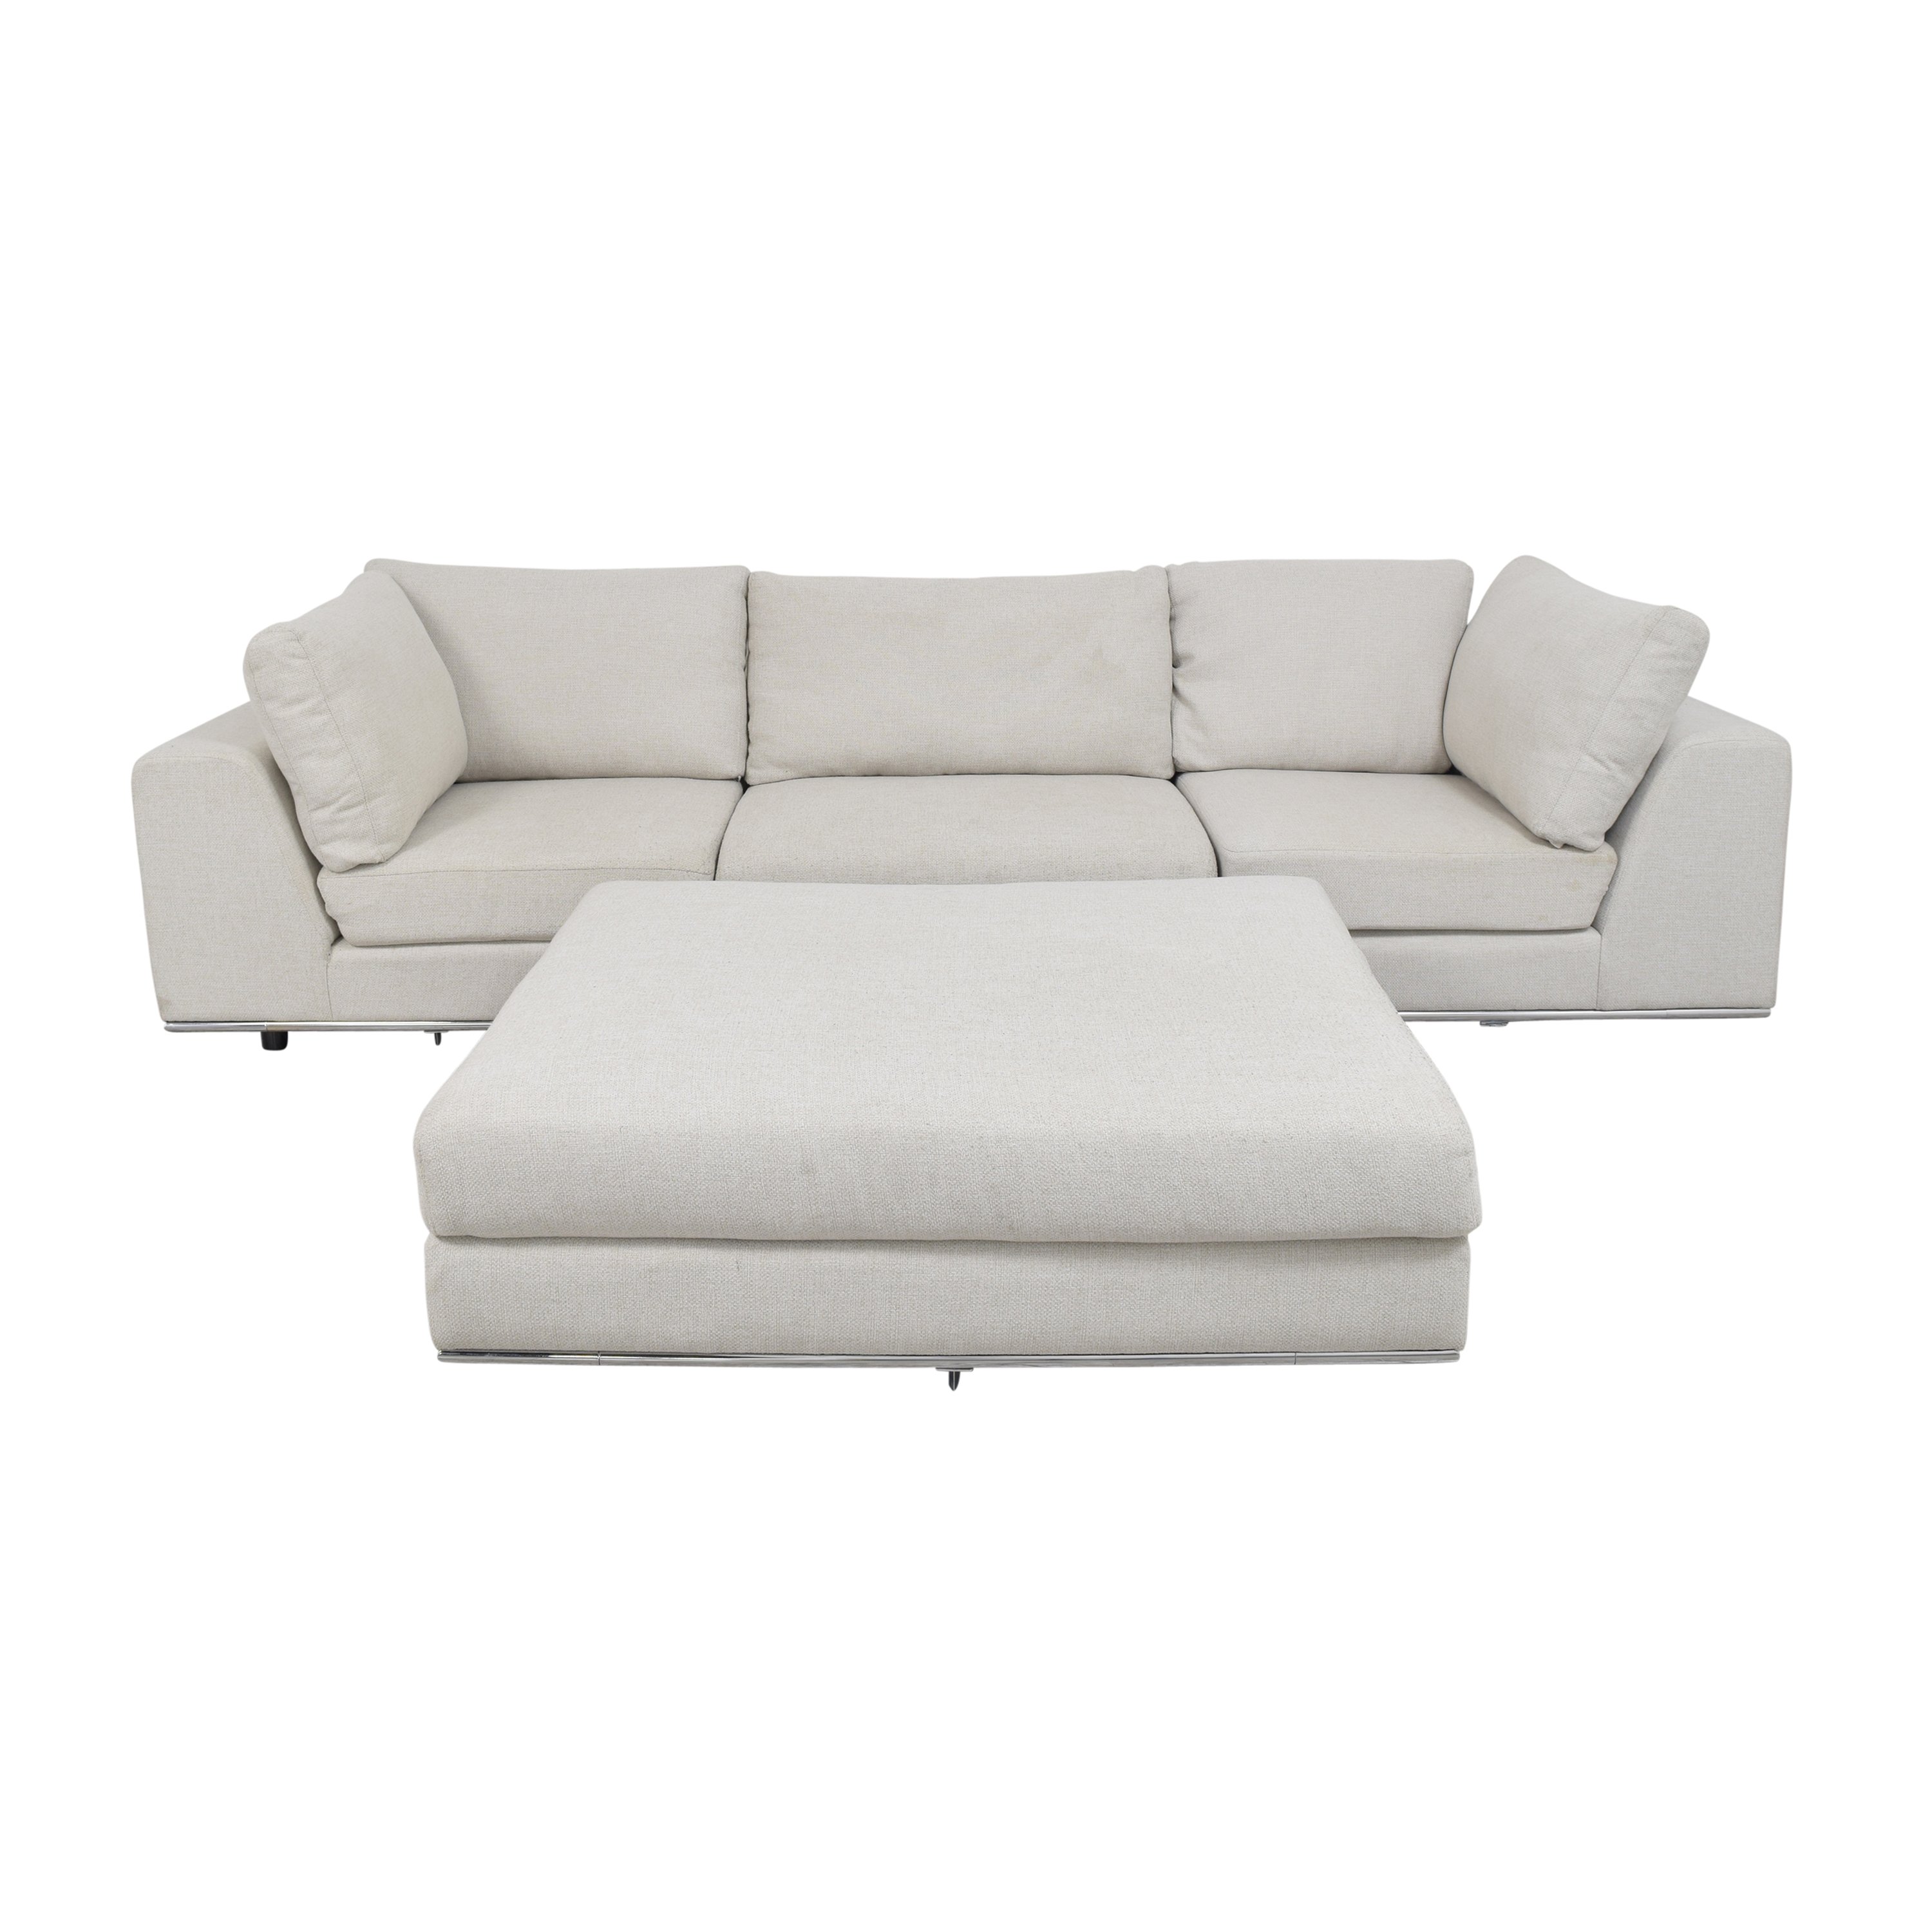 shop Modloft Sectional Sofa with Ottoman Modloft